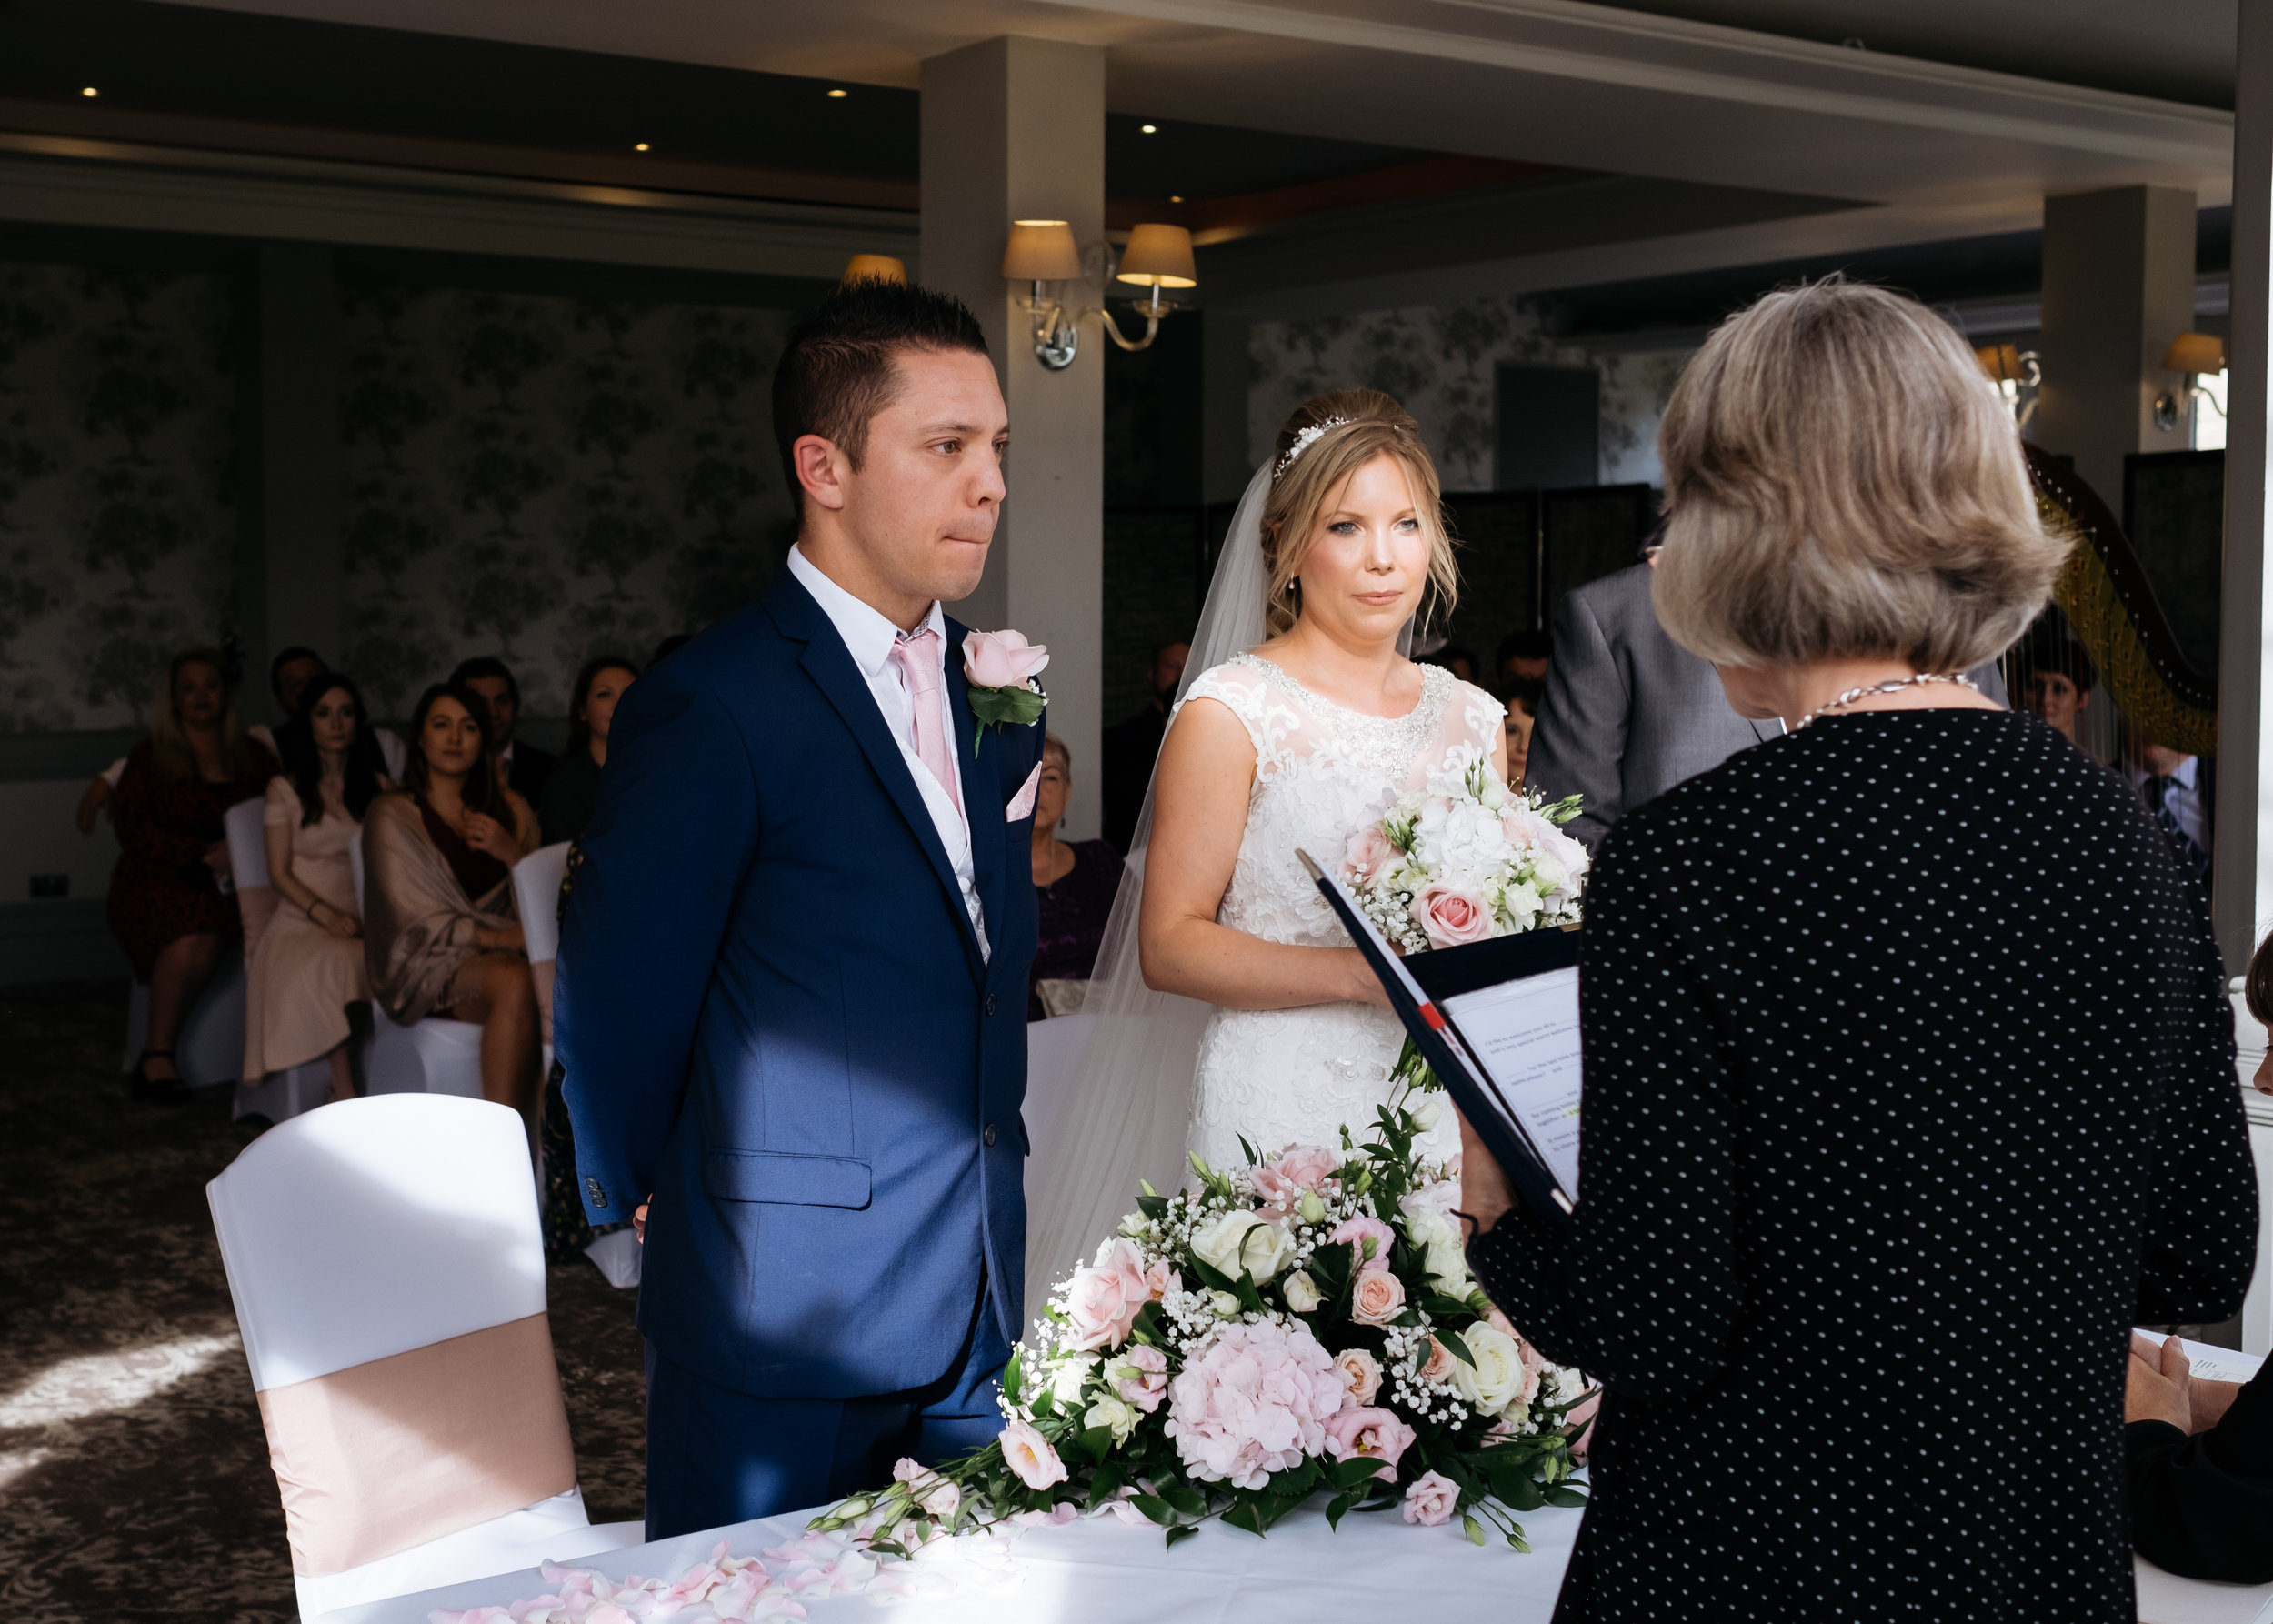 Wedding ceremony at Mercure Newbury Elcot Park Hotel